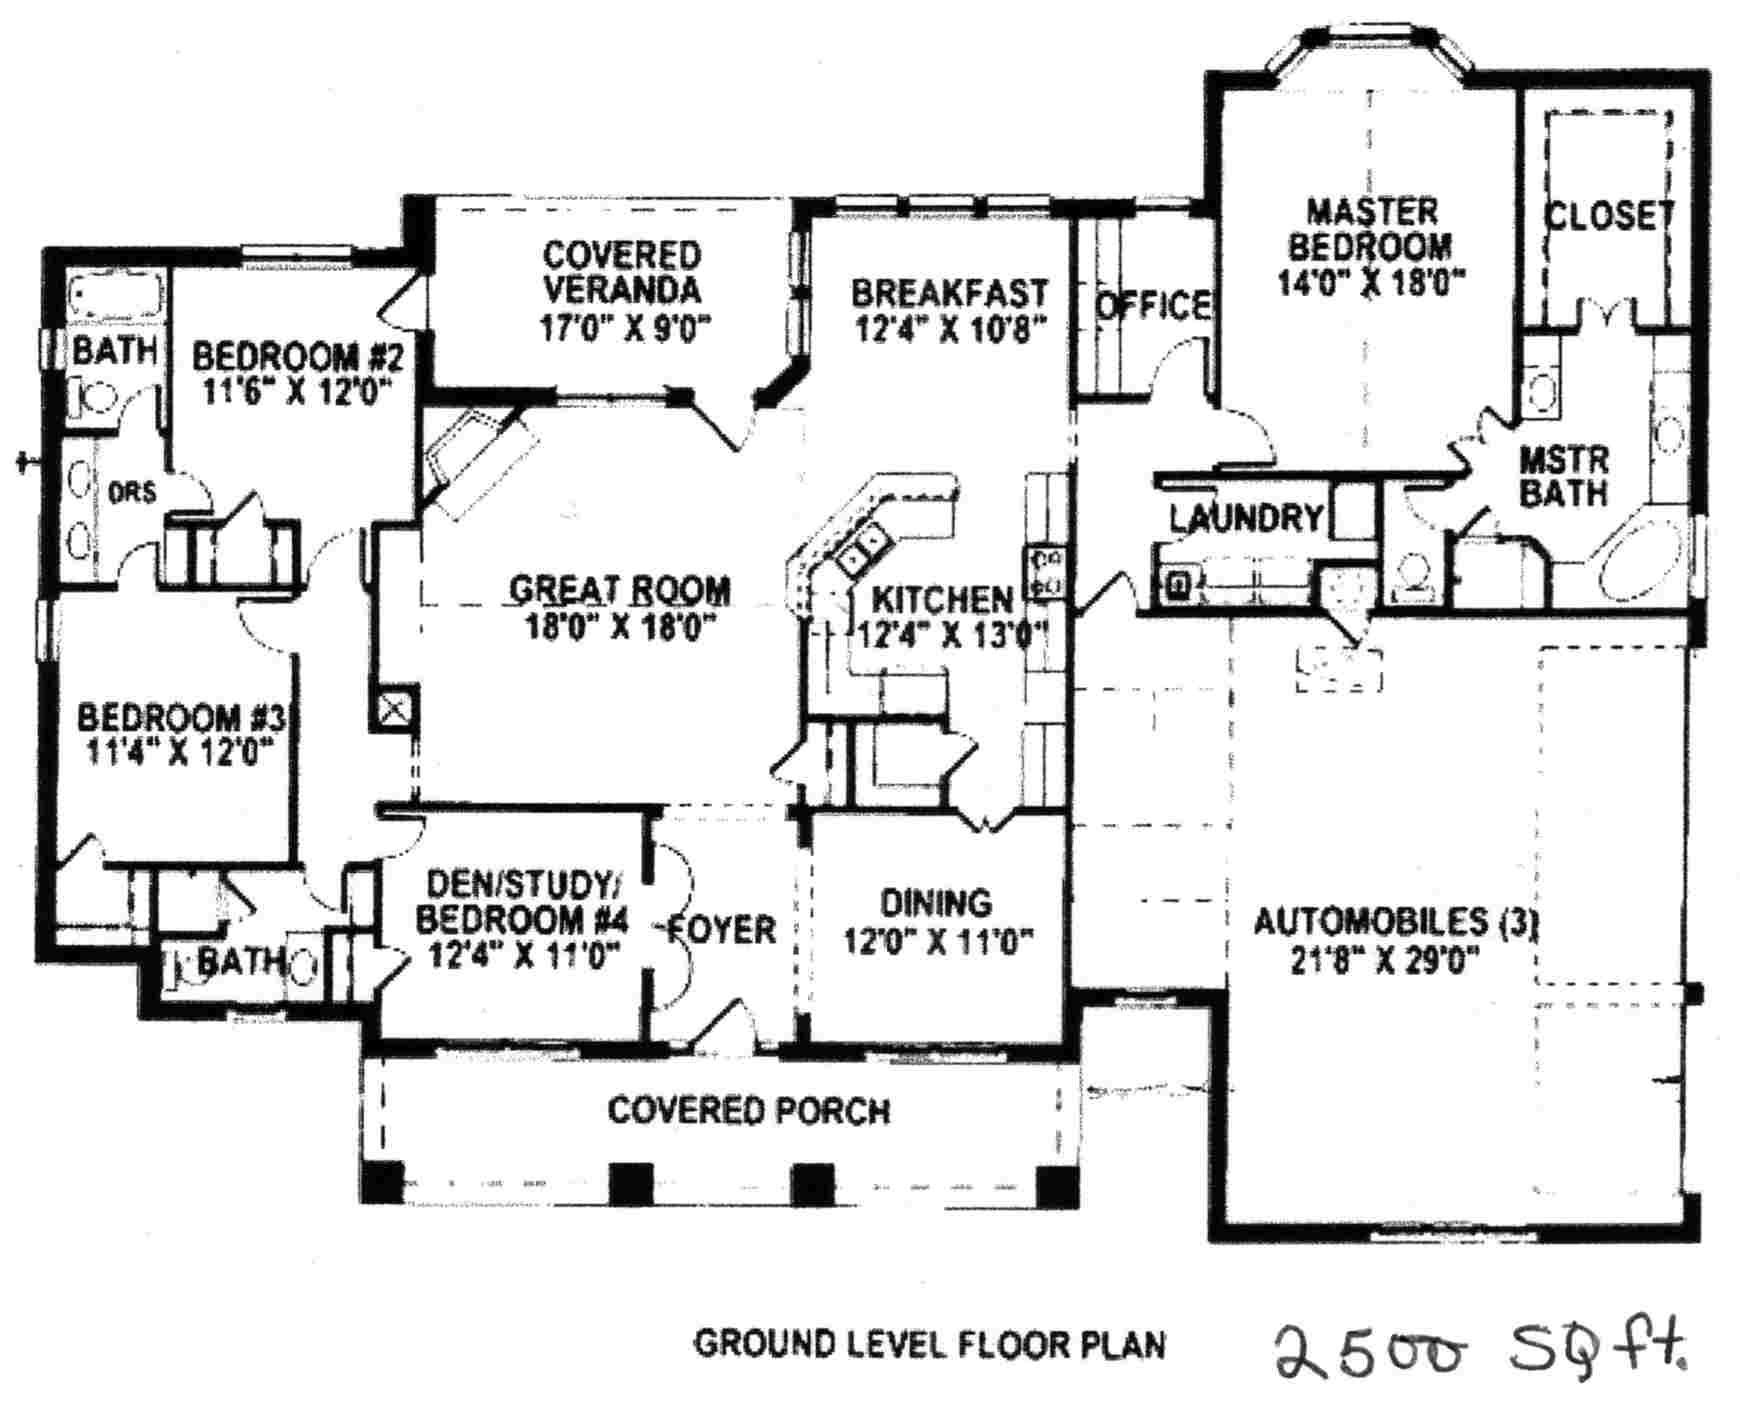 2500 sq ft house plans peltier builders inc about us for 2500 square foot house plans